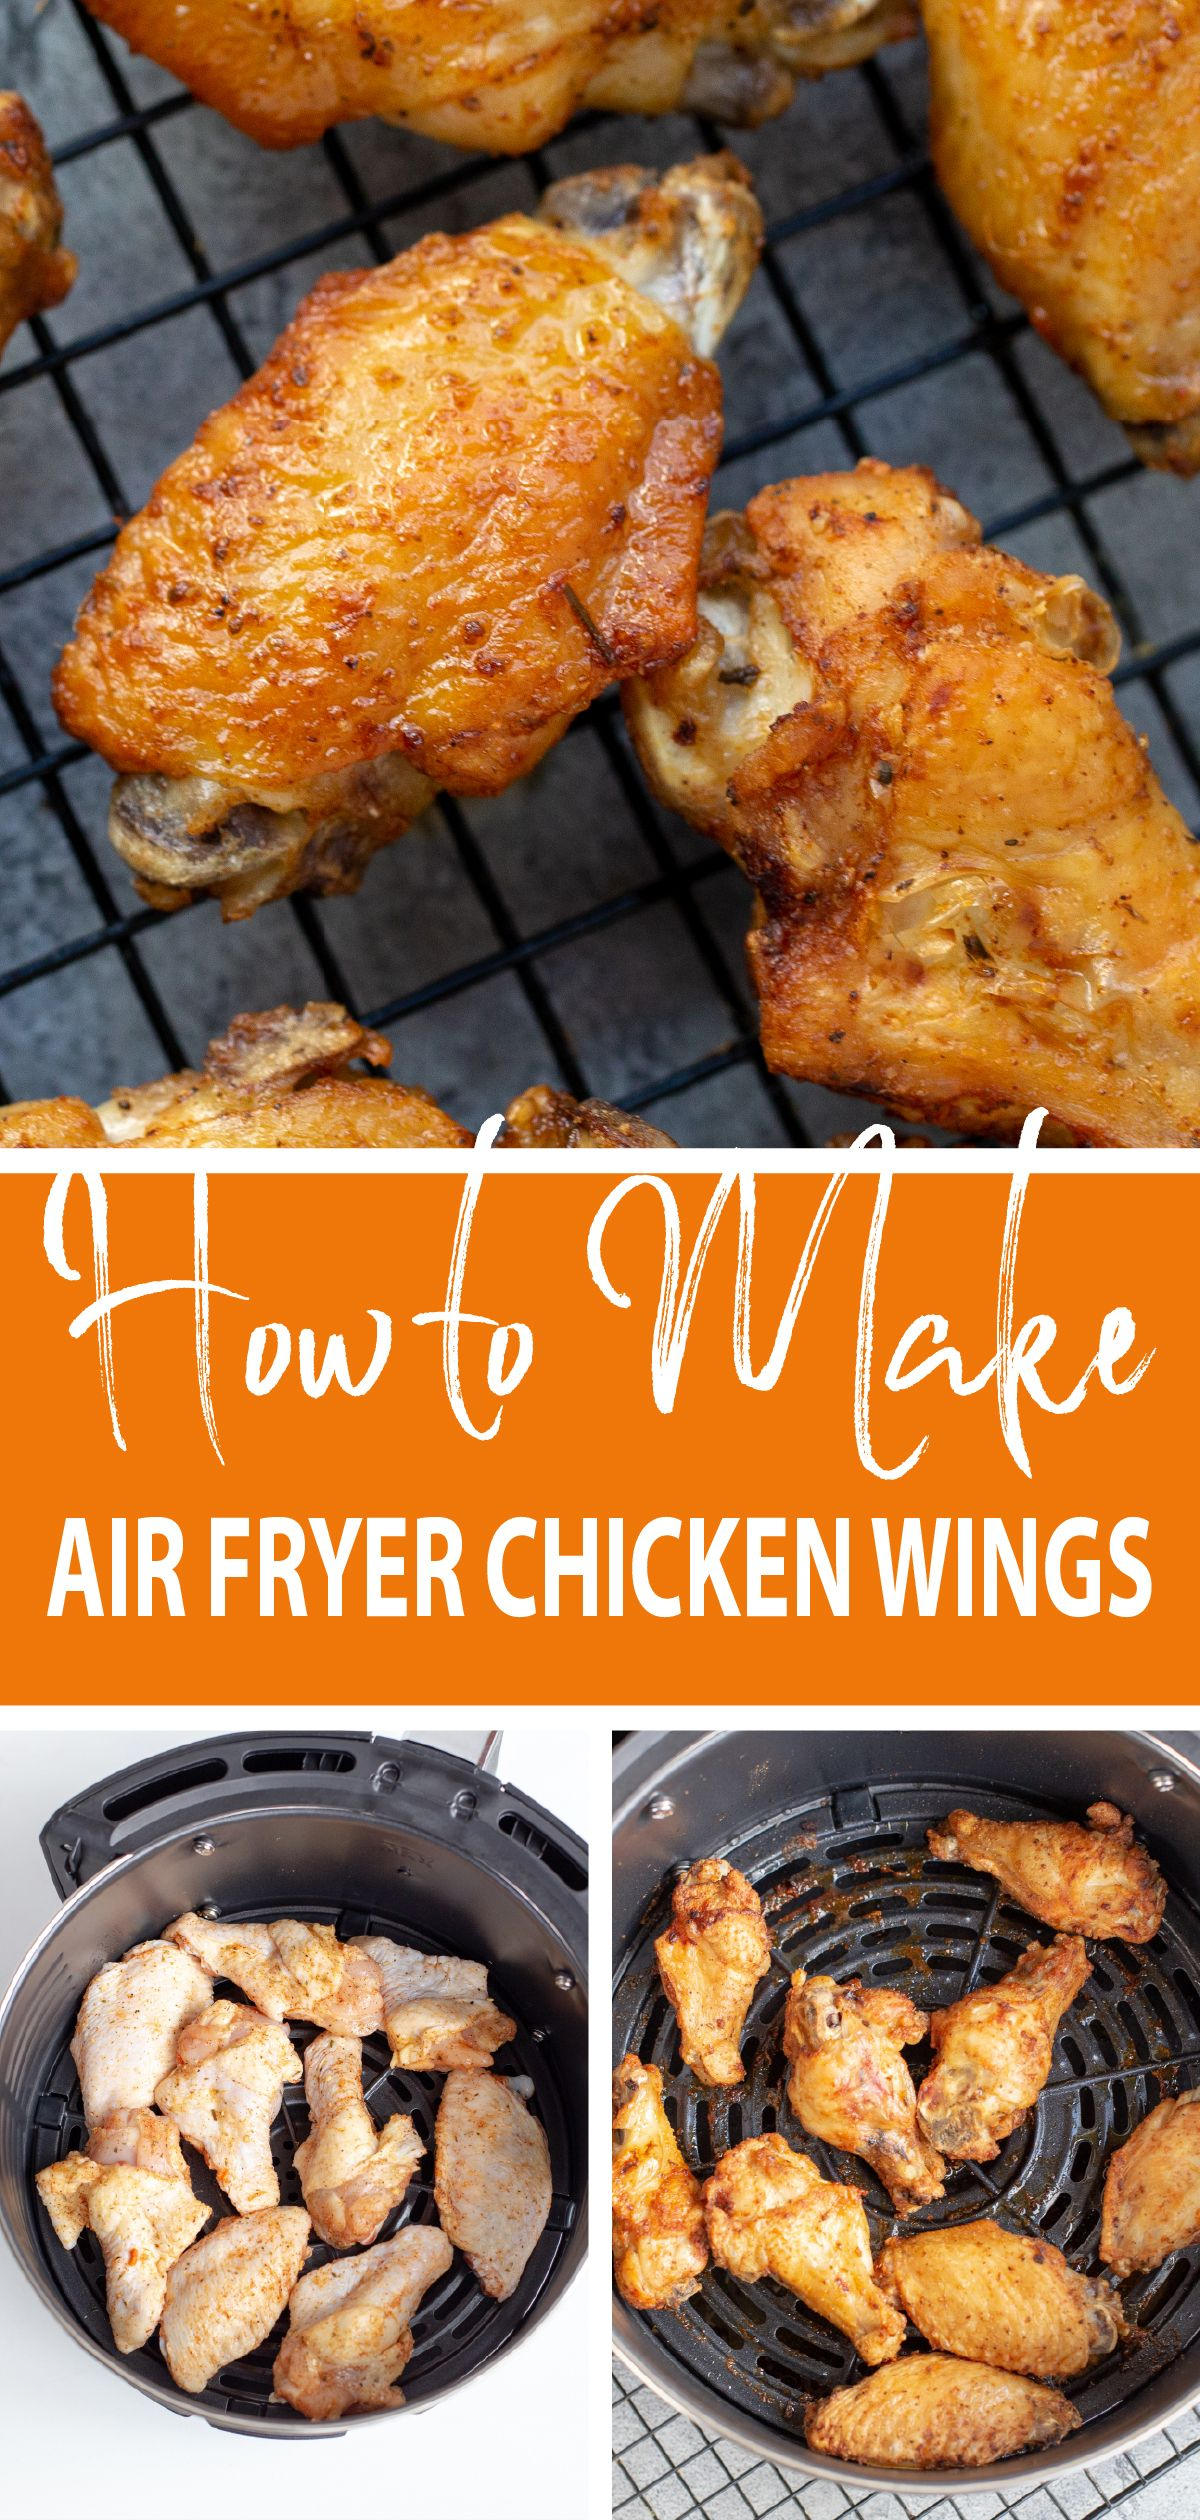 Do you want to know how to make air fryer chicken wings